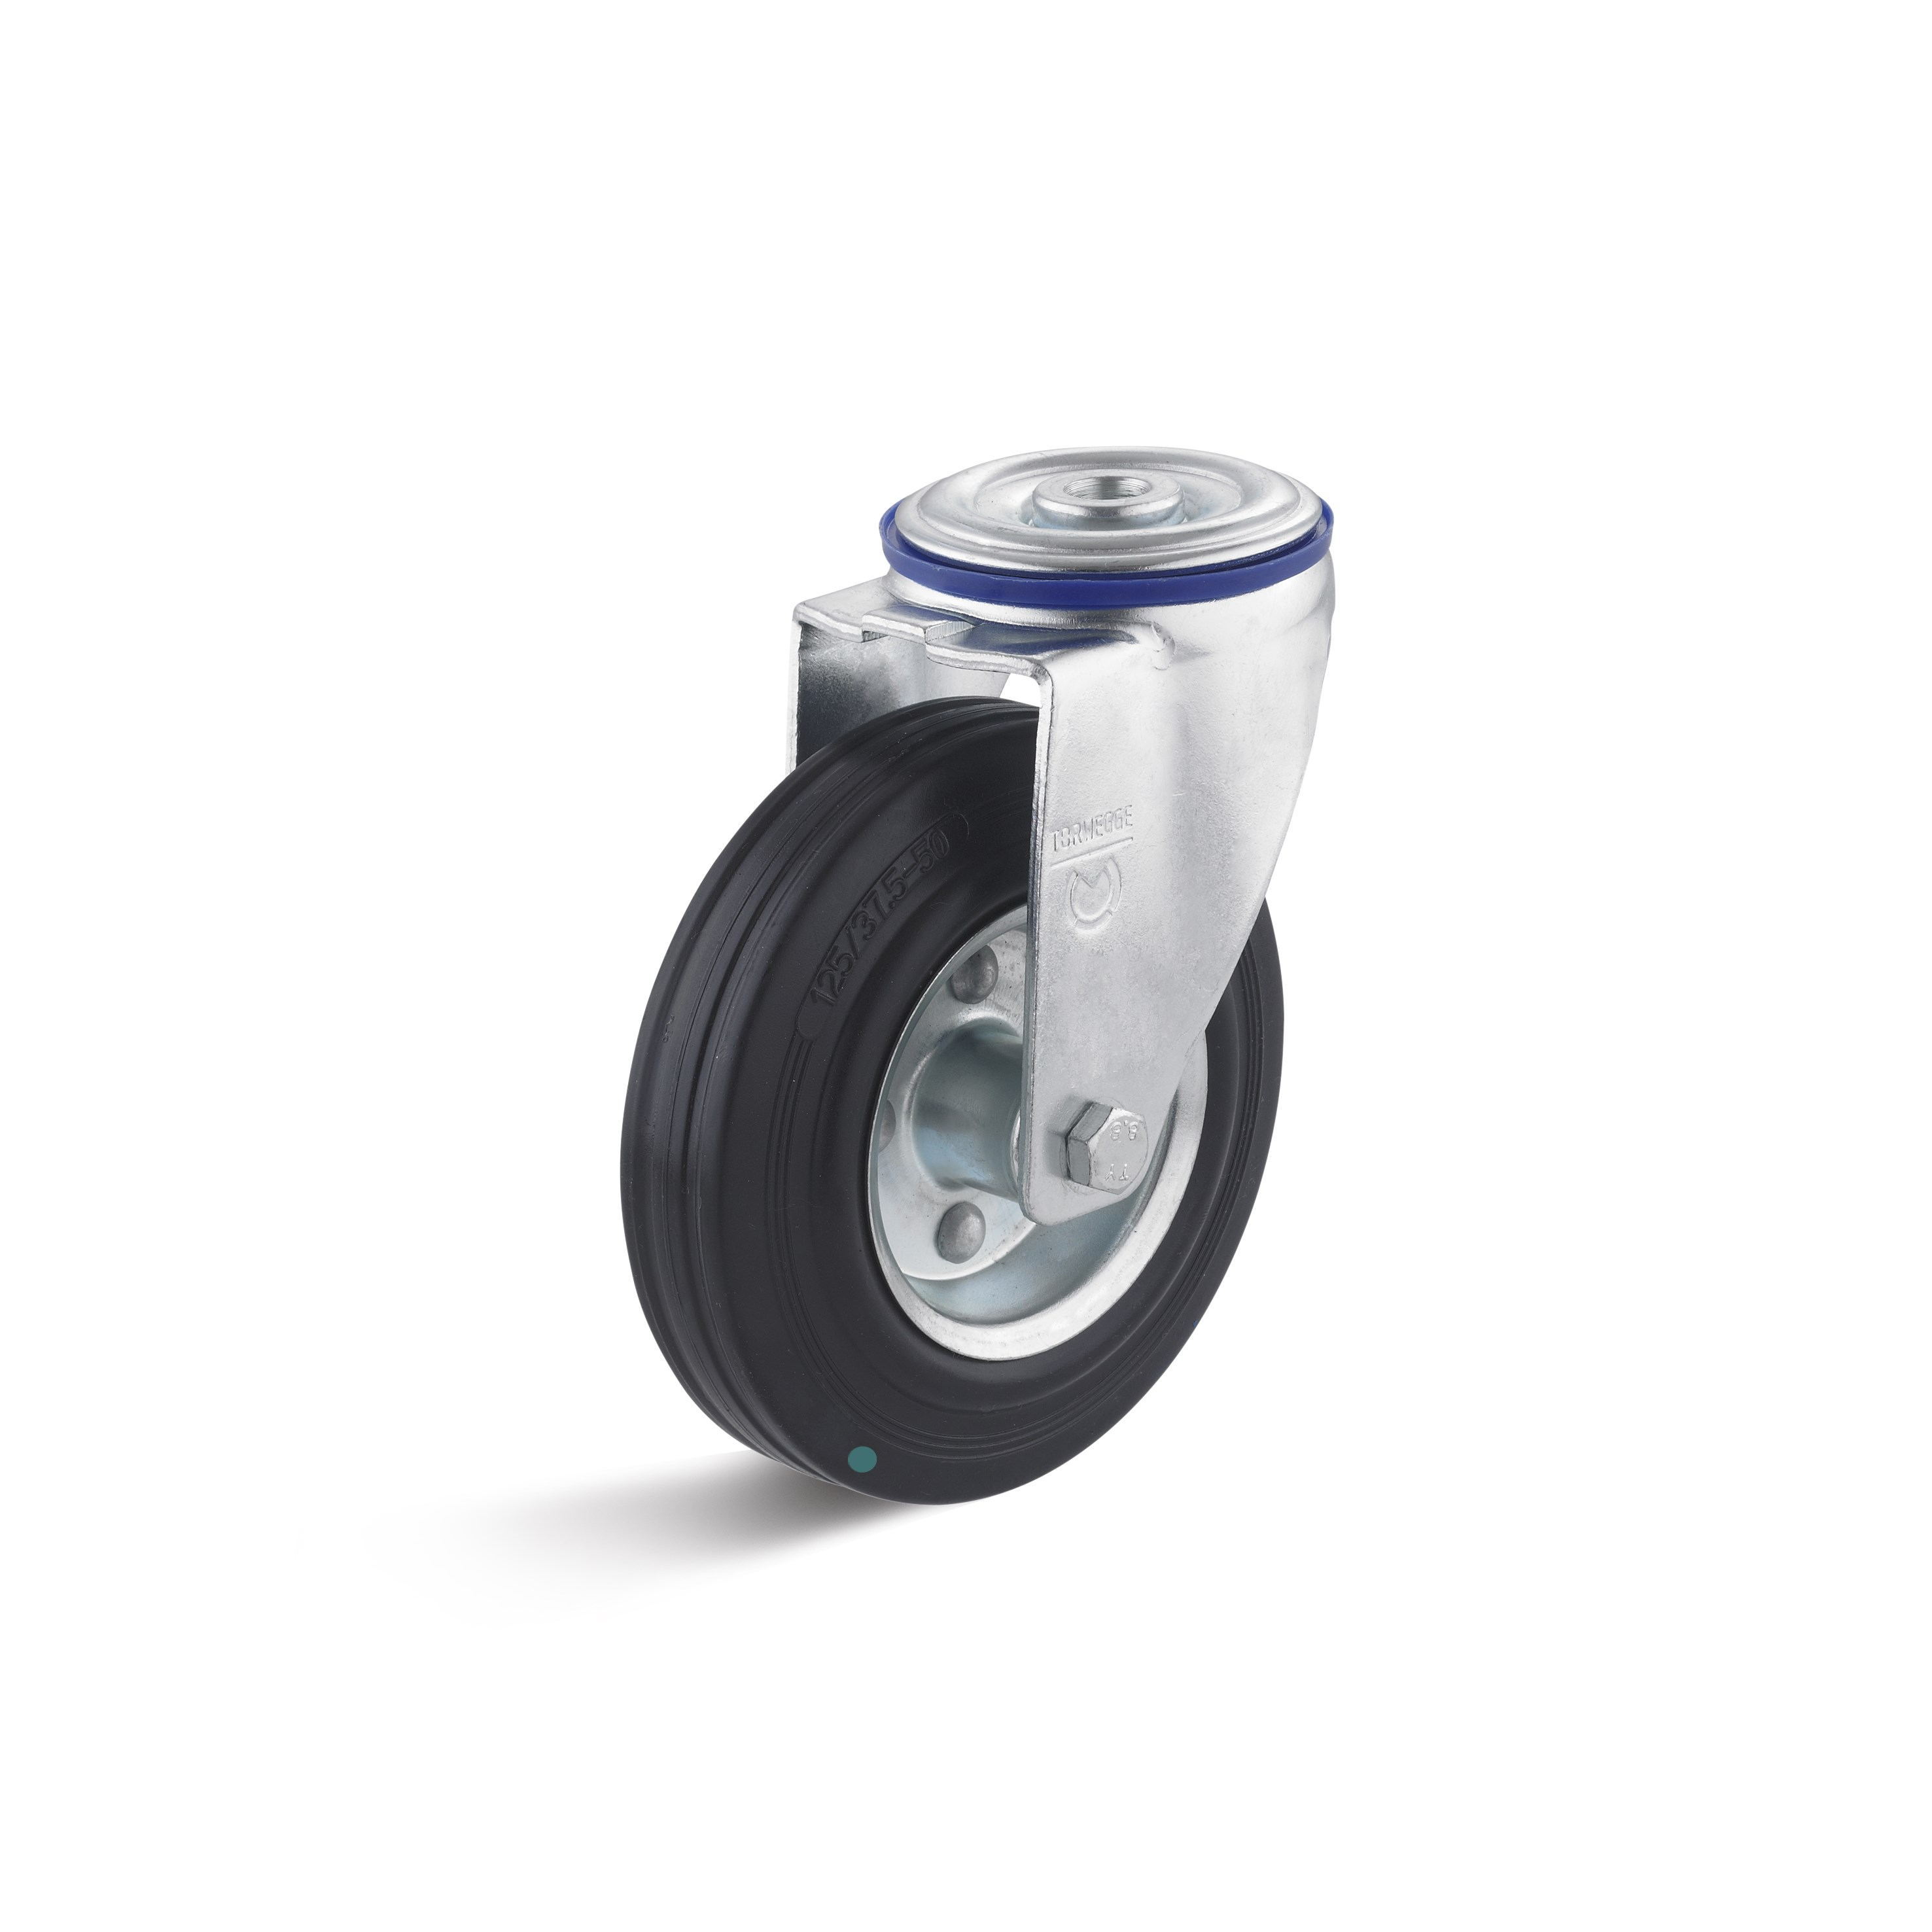 Swivel castor with back hole and solid rubber wheel